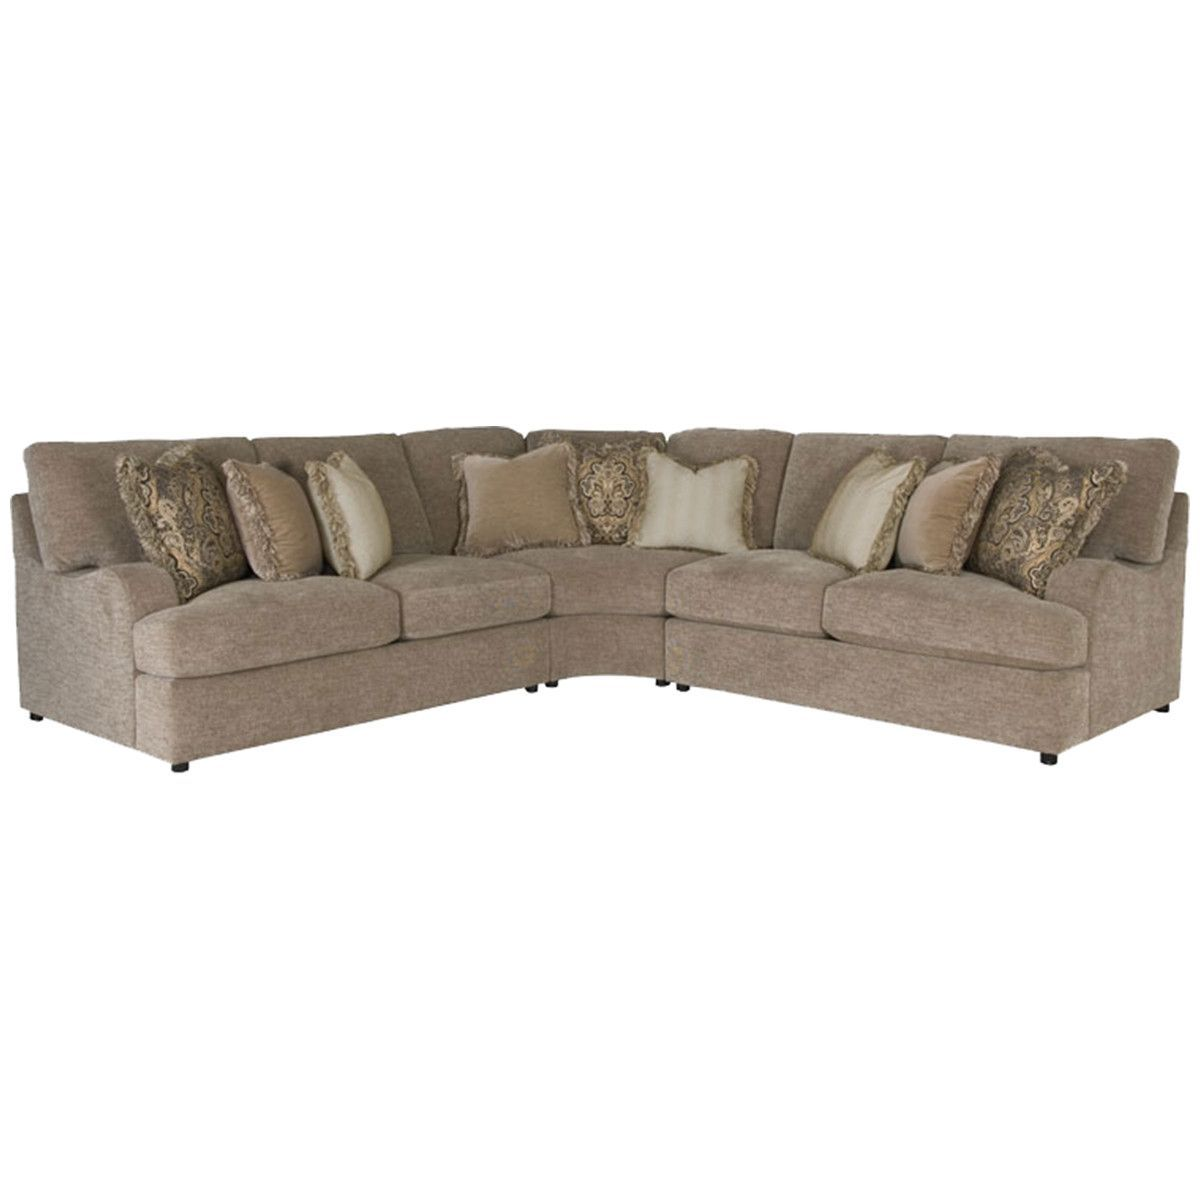 Bernhardt Upholstery Eagan Sectional Leather Sectional Sofas Sectional Sofa Upholstery